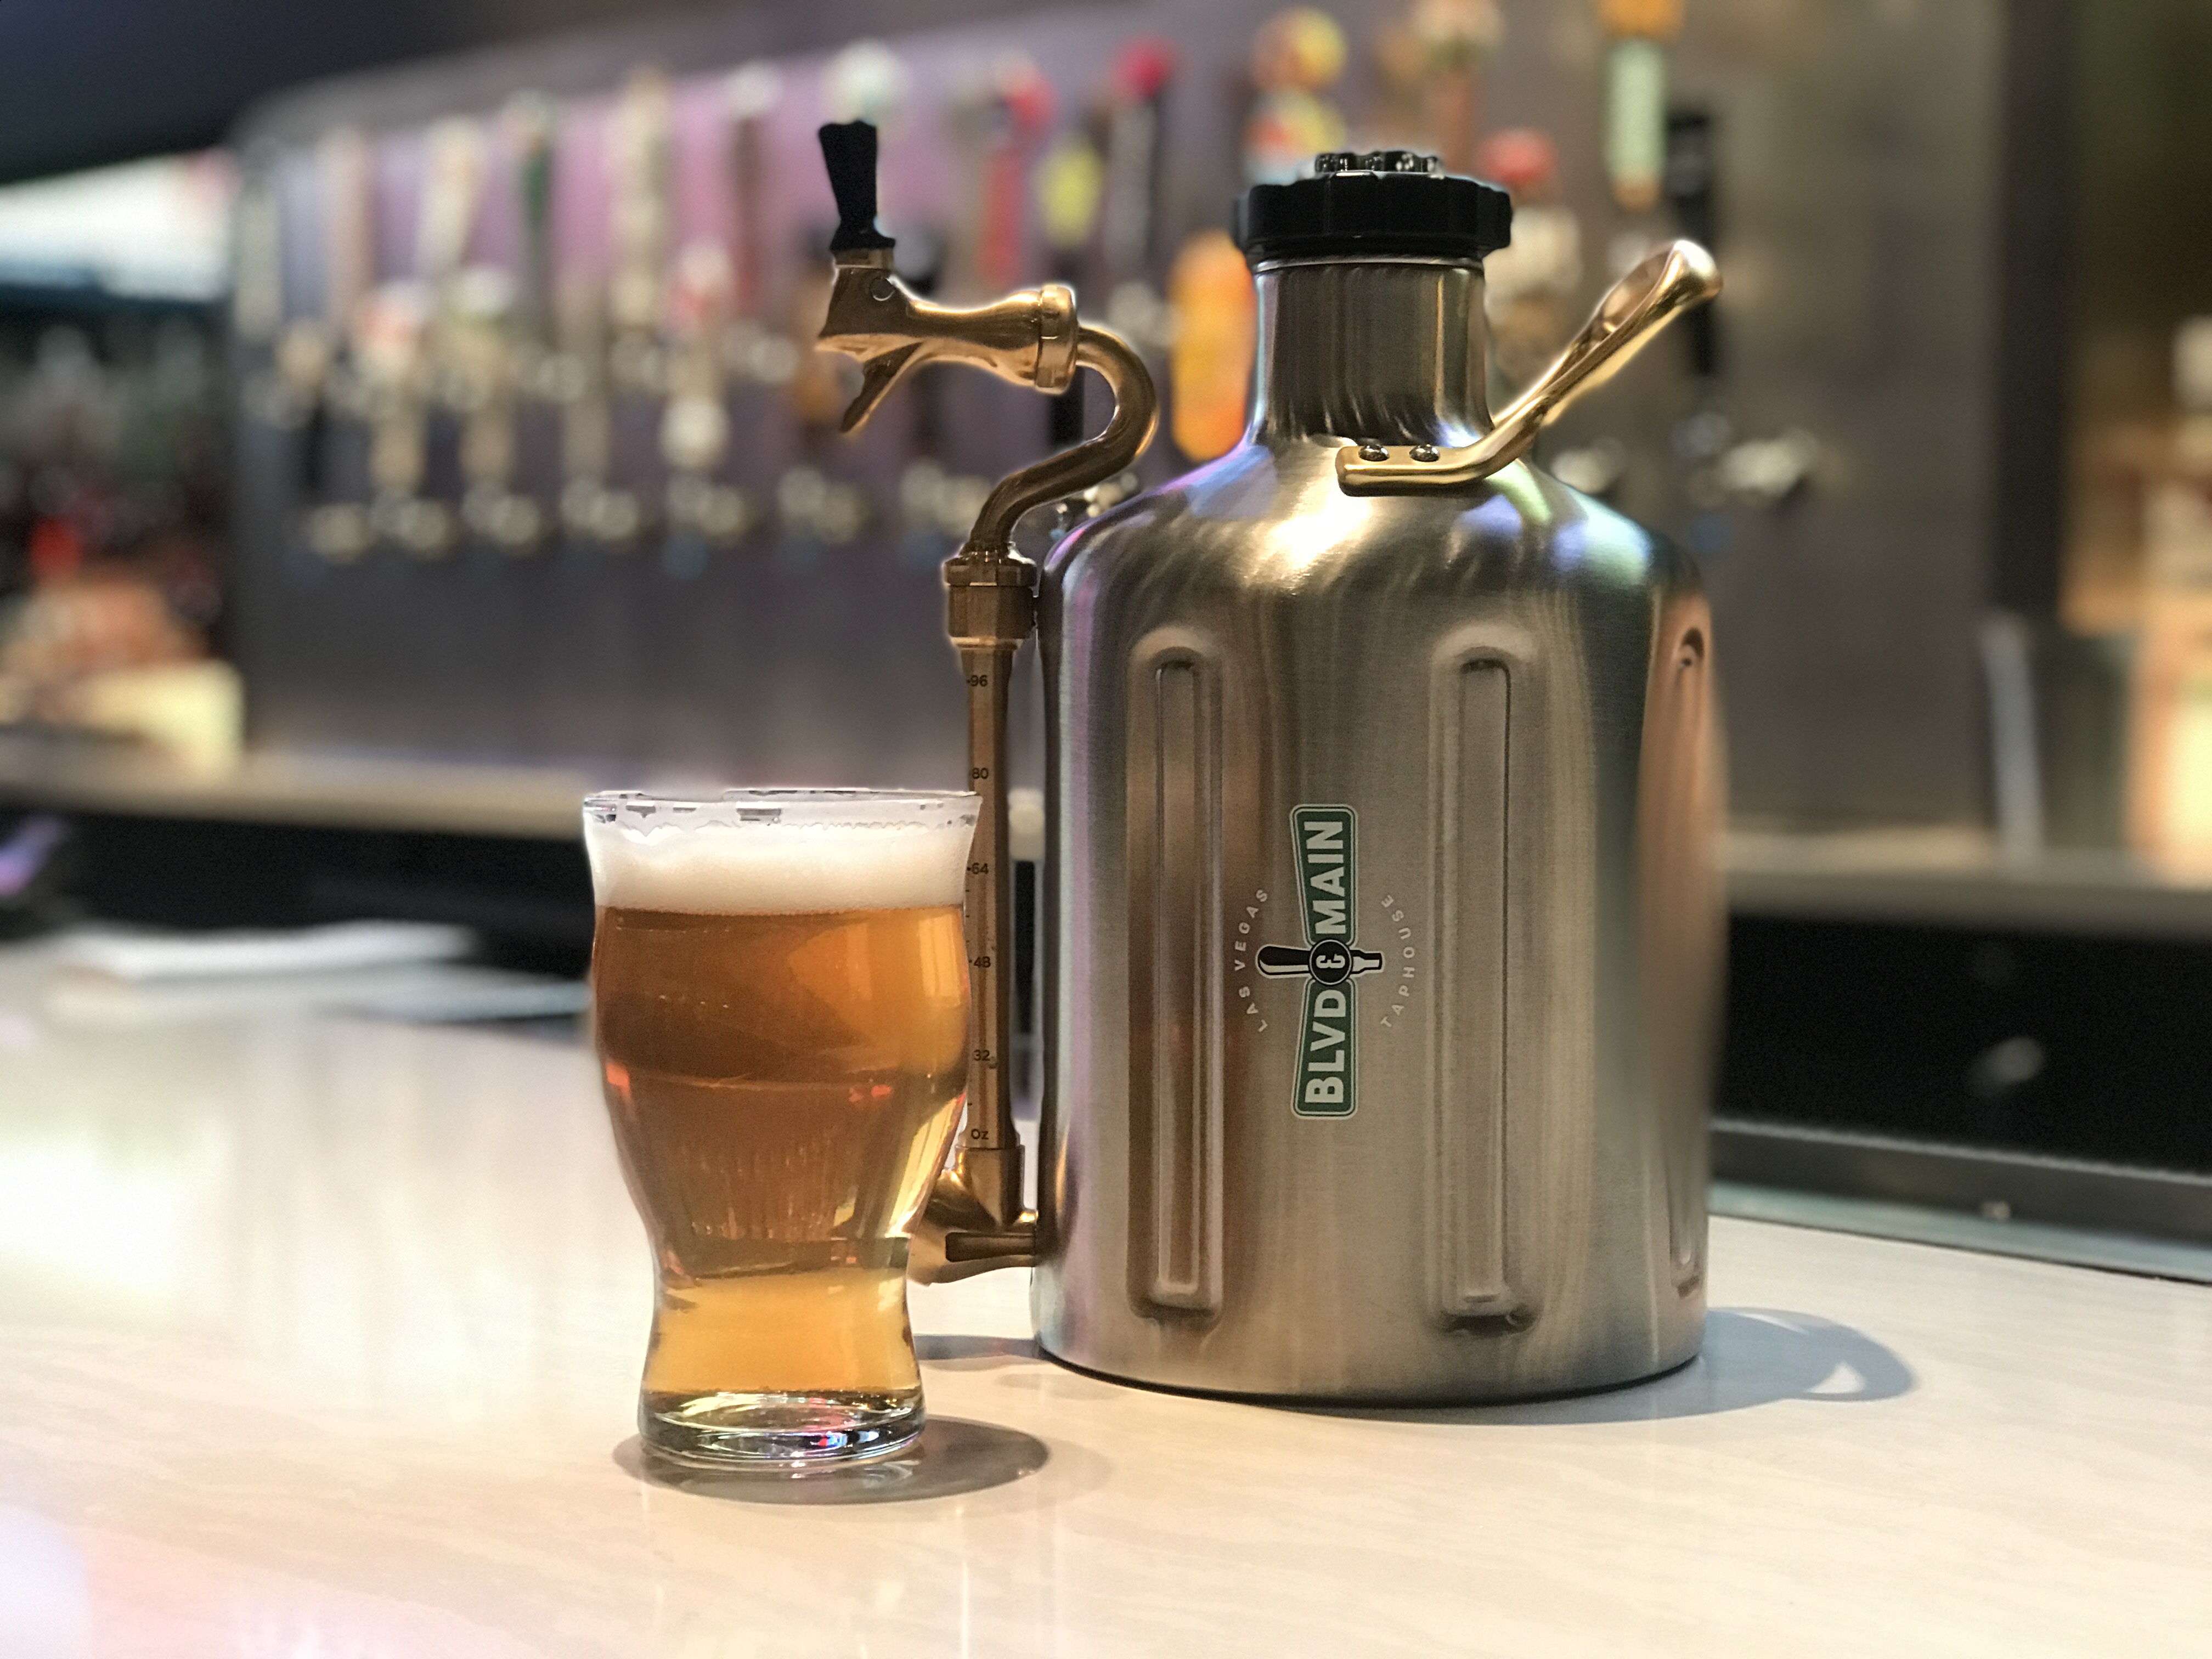 BLVD & MAIN Taphouse at The STRAT Hotel Introduces Table-side Growlers